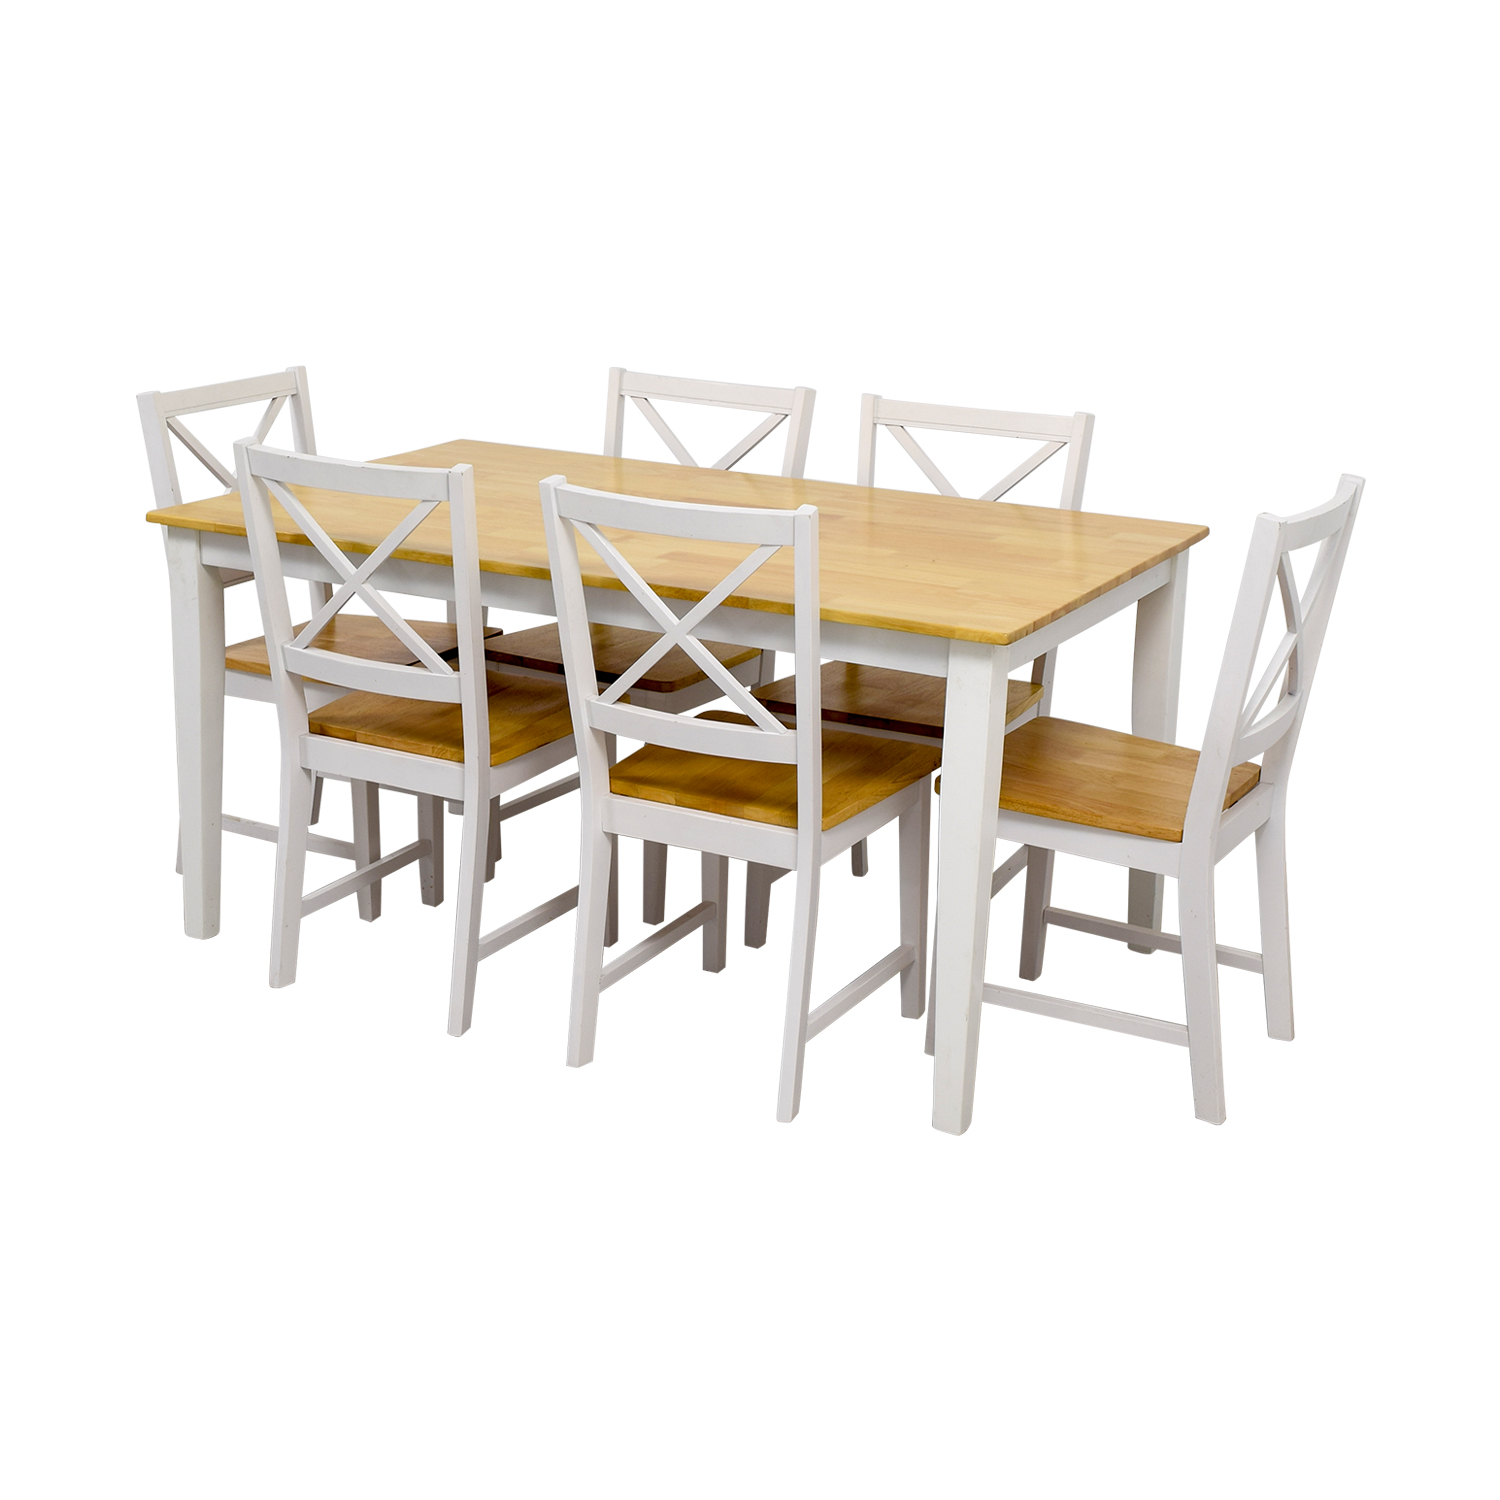 Beech Wood and White Dining Set